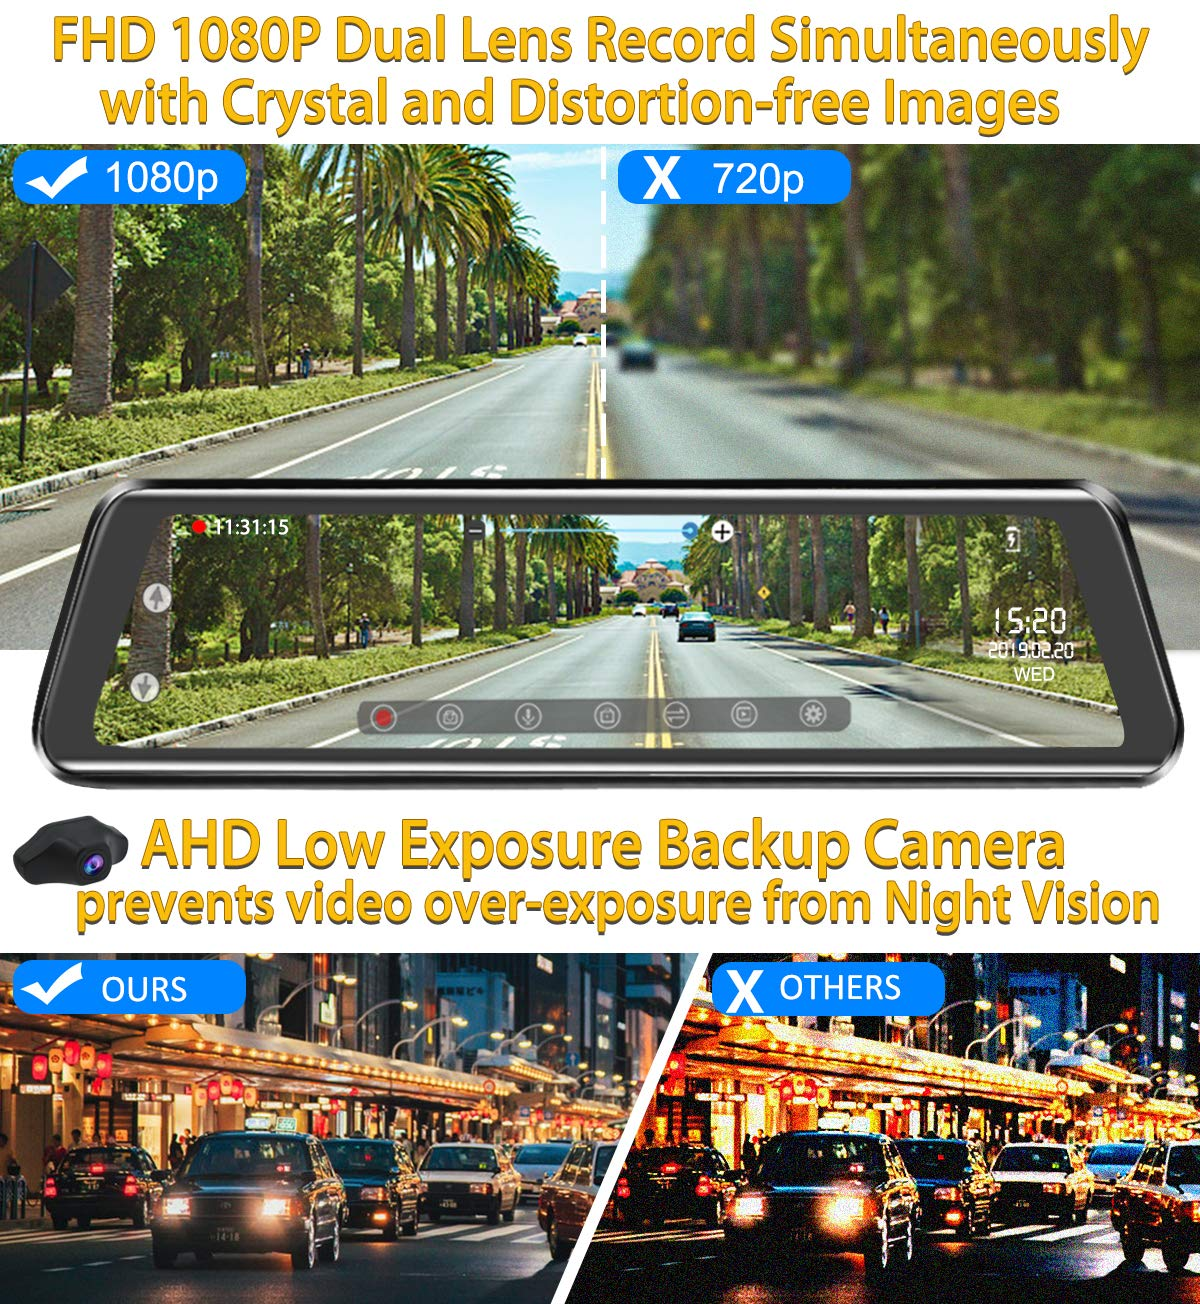 Mirror Dash Cam 9.88 inch Full Touch Screen Car Backup Camera Dual Recording HD Front 1080P 170° Wide Angle 1080P Rear View Camera 150° URVOLAX Night Vision,24-Hour Parking,GPS, SD Card by URVOLAX (Image #3)